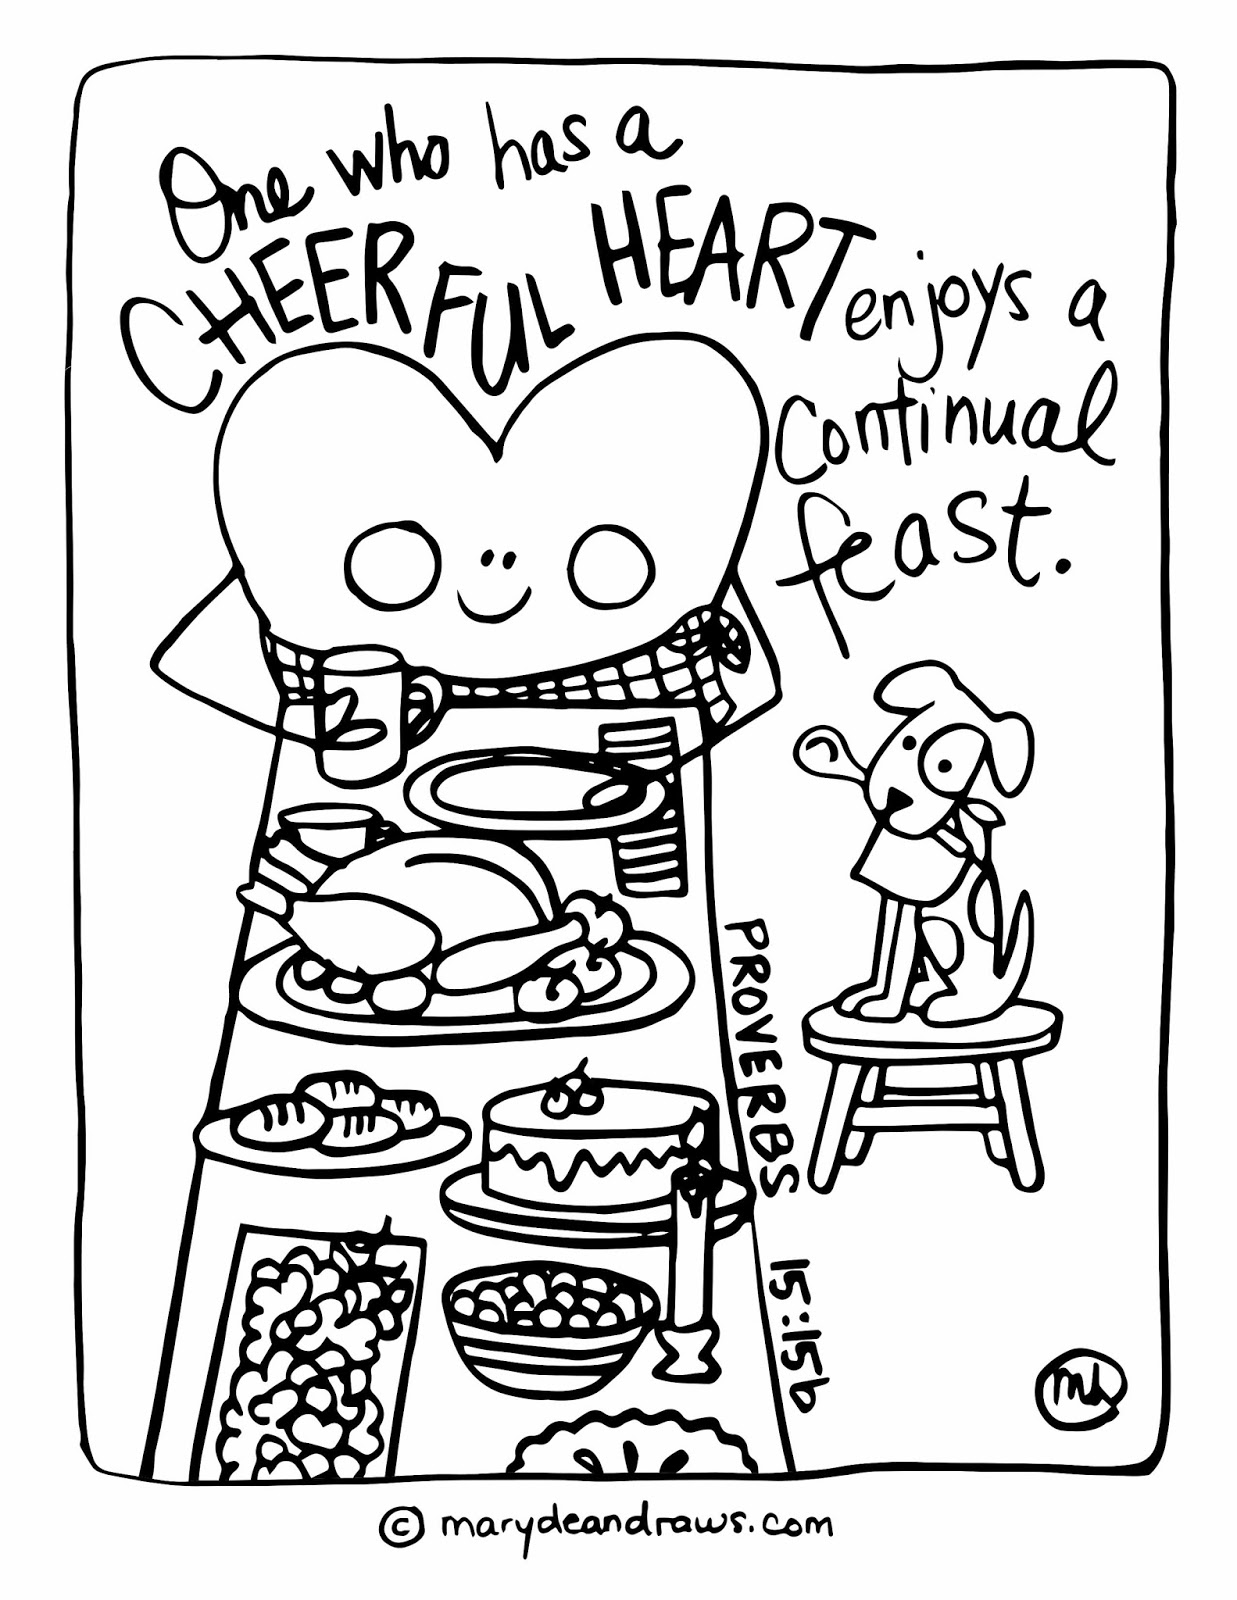 Cheerful heart, continual feast + FREE Thanksgiving ...